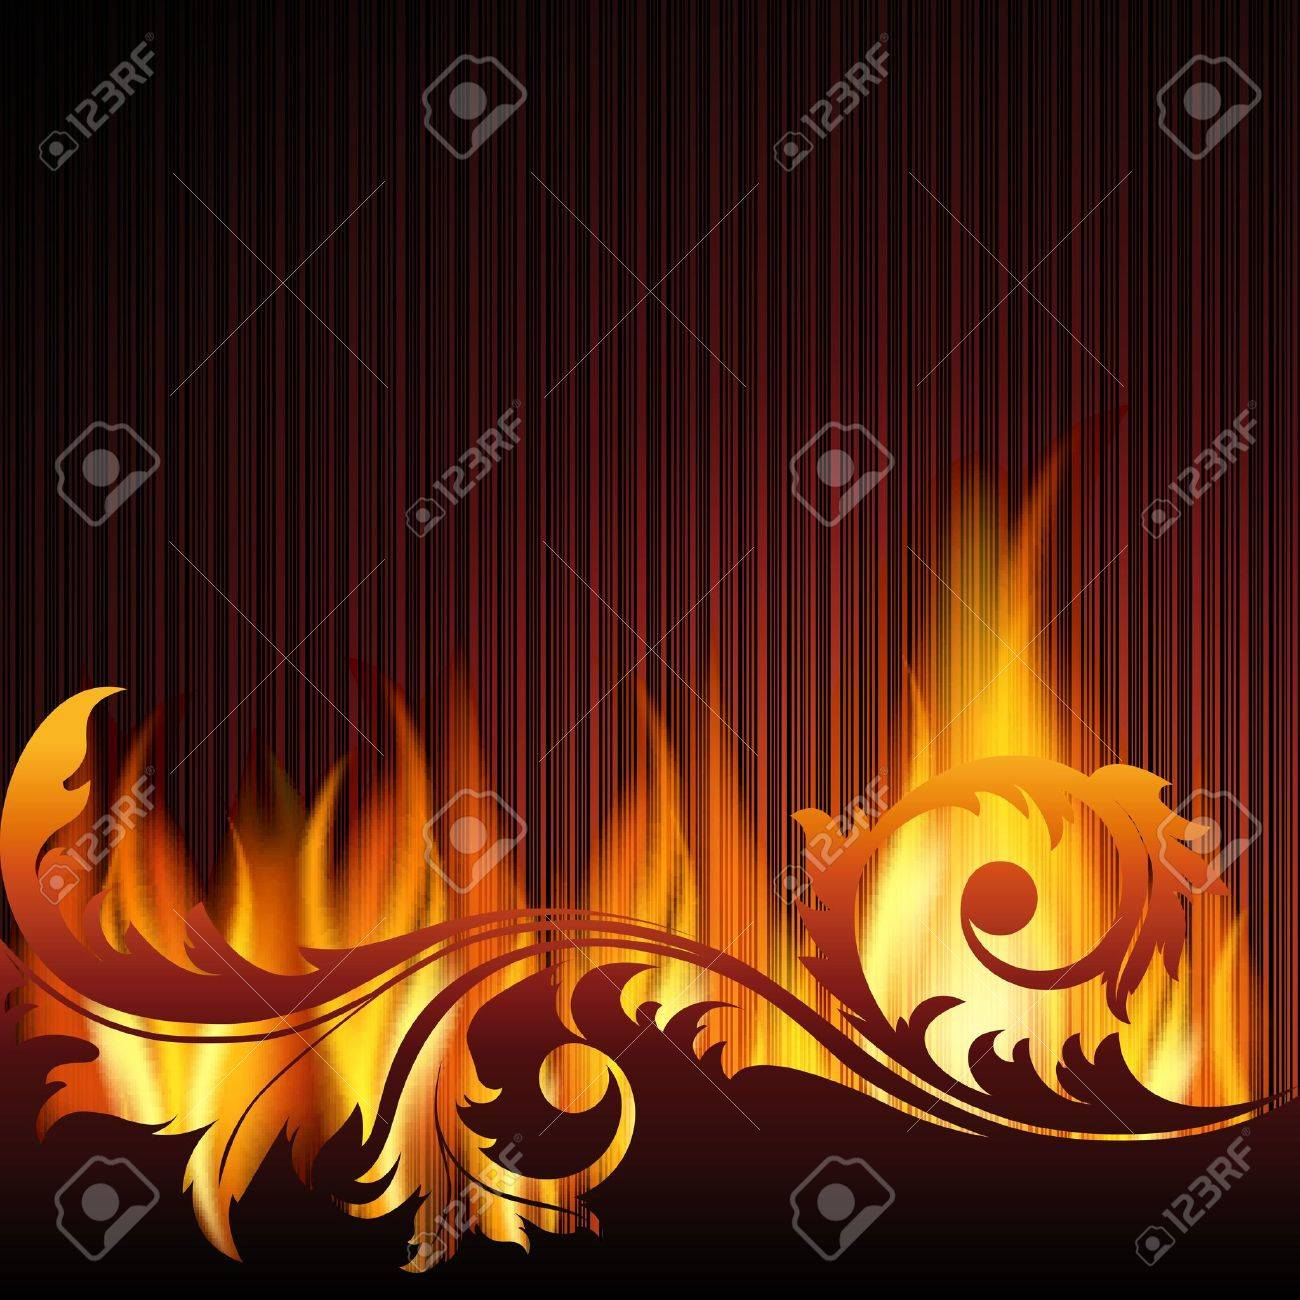 Black background with flame. - 11218752